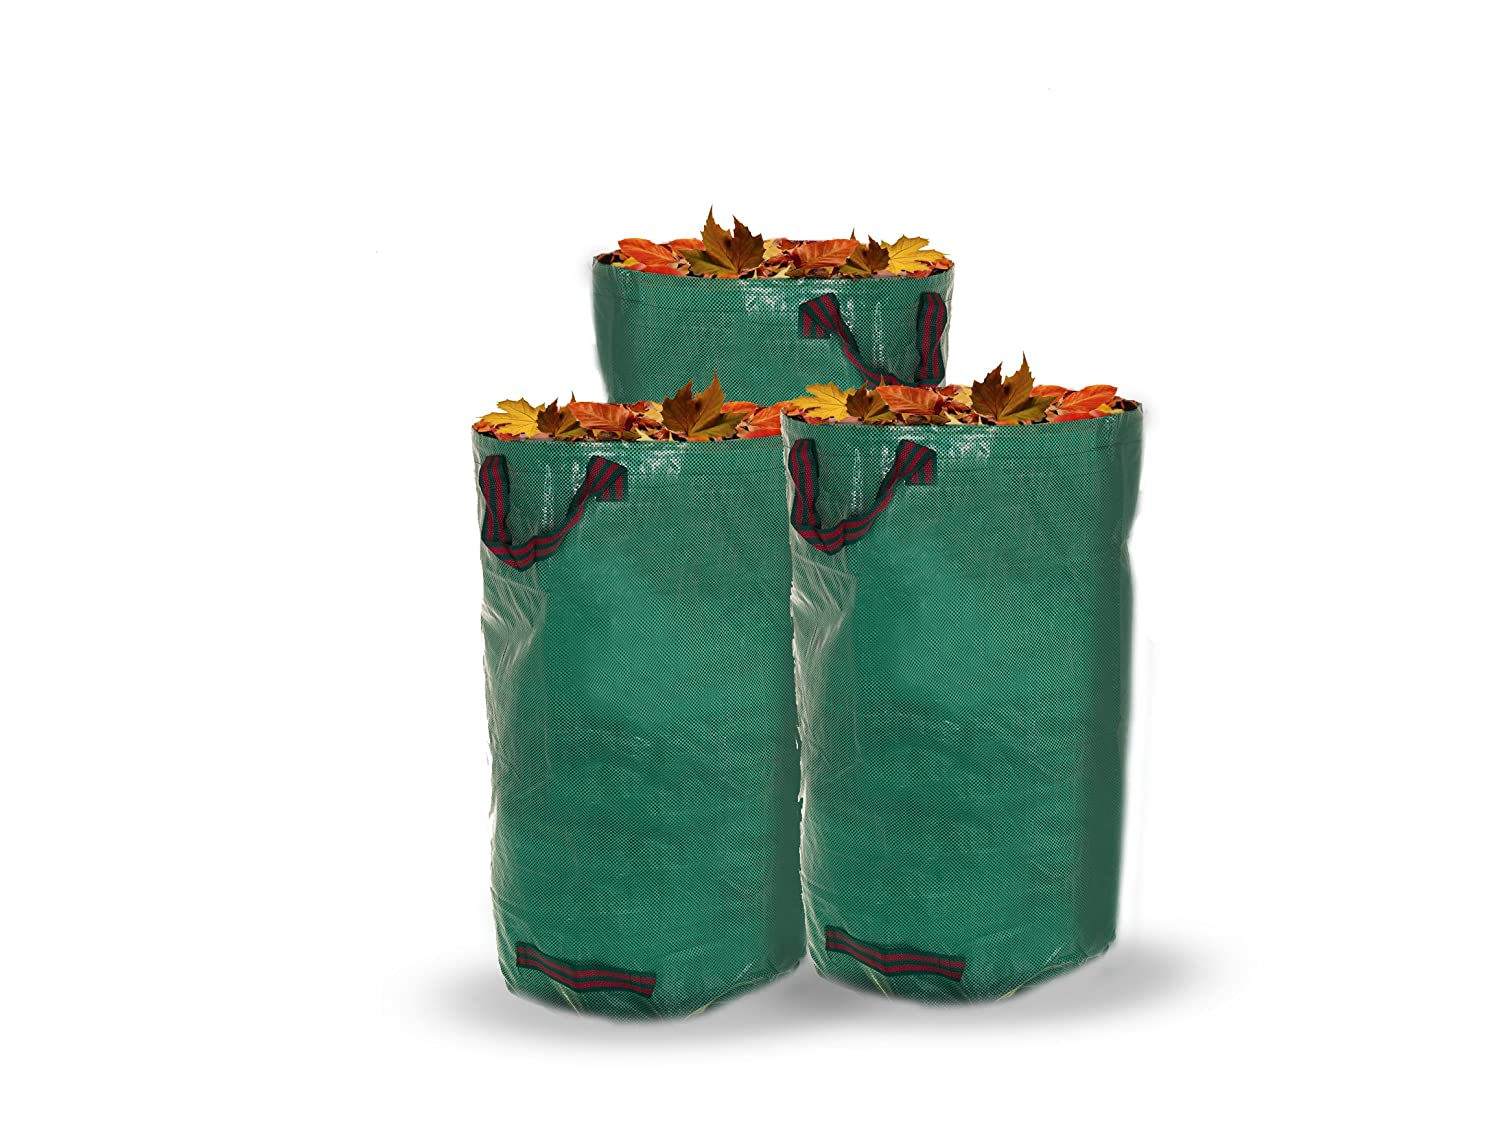 FiNeWaY@Heavy Duty Garden Bag Waste Weeds Leaves Bin Cutting Refuse Sack Bag 82L Each Set of 2 Bags LIVIVO